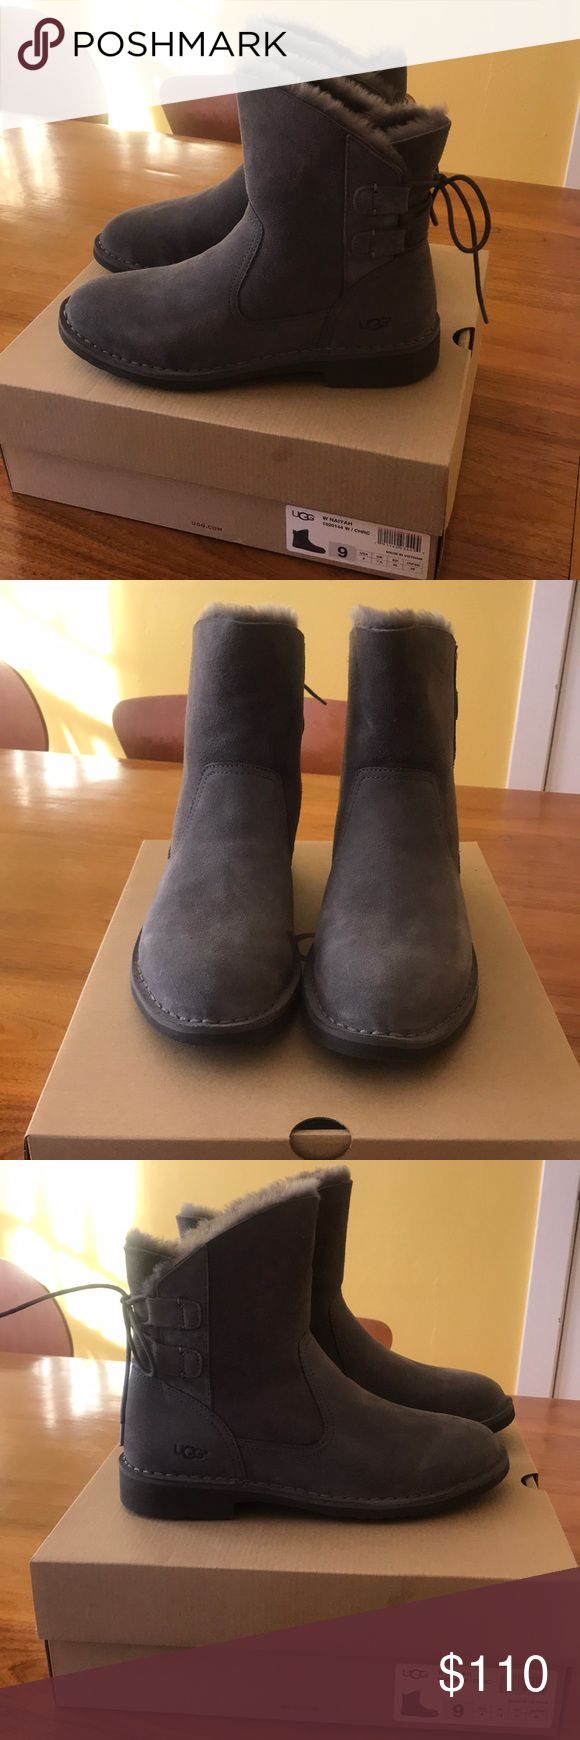 """UGG boots. Brand new, grey, """"Naiyah"""" style booties Brand new, never worn, grey """"Naiyah"""" UGG boots. Perfect for keeping your feet cozy and stylish during the winter months. Cute lace-up detail in the back. Ships in original UGG box. UGG Shoes Winter & Rain Boots"""